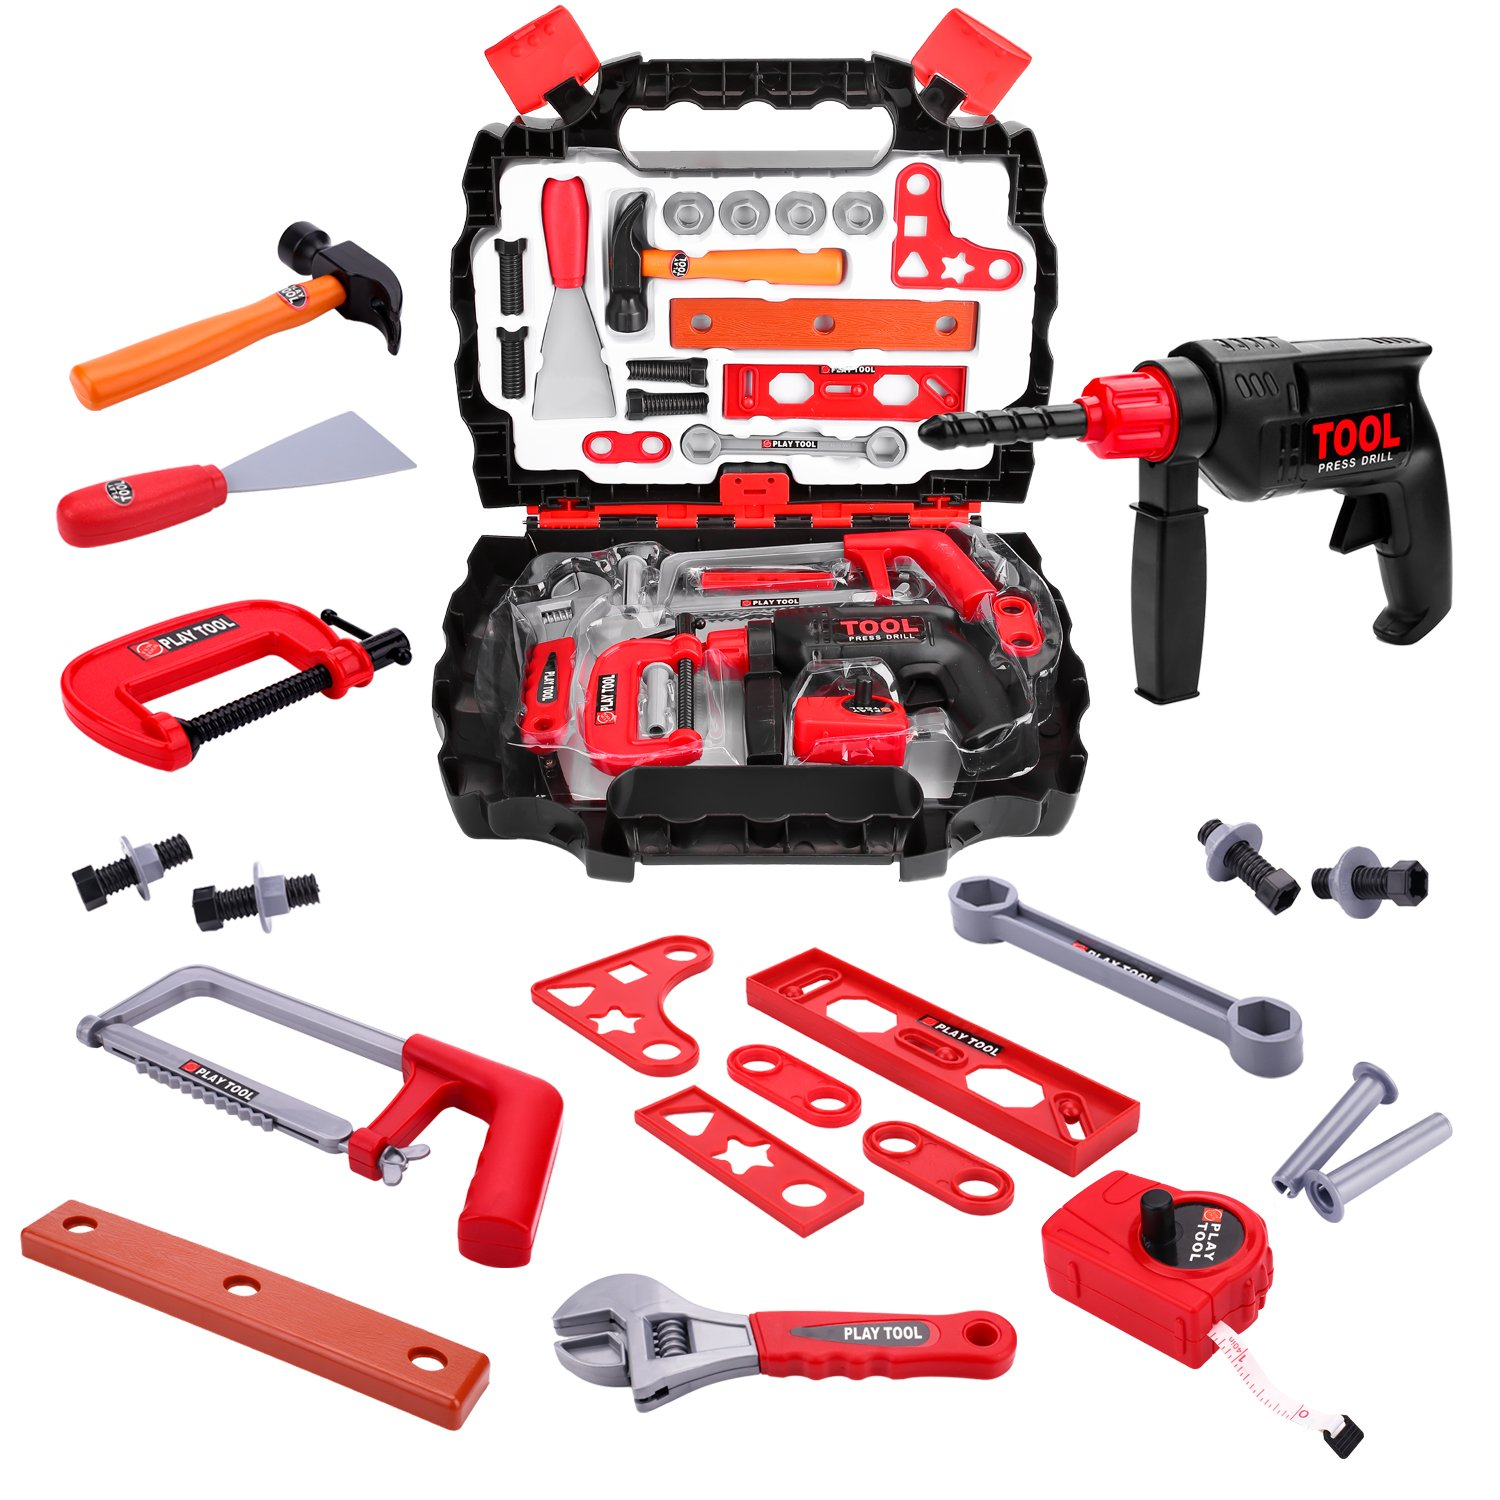 Amazon Construction Tools Toys & Games